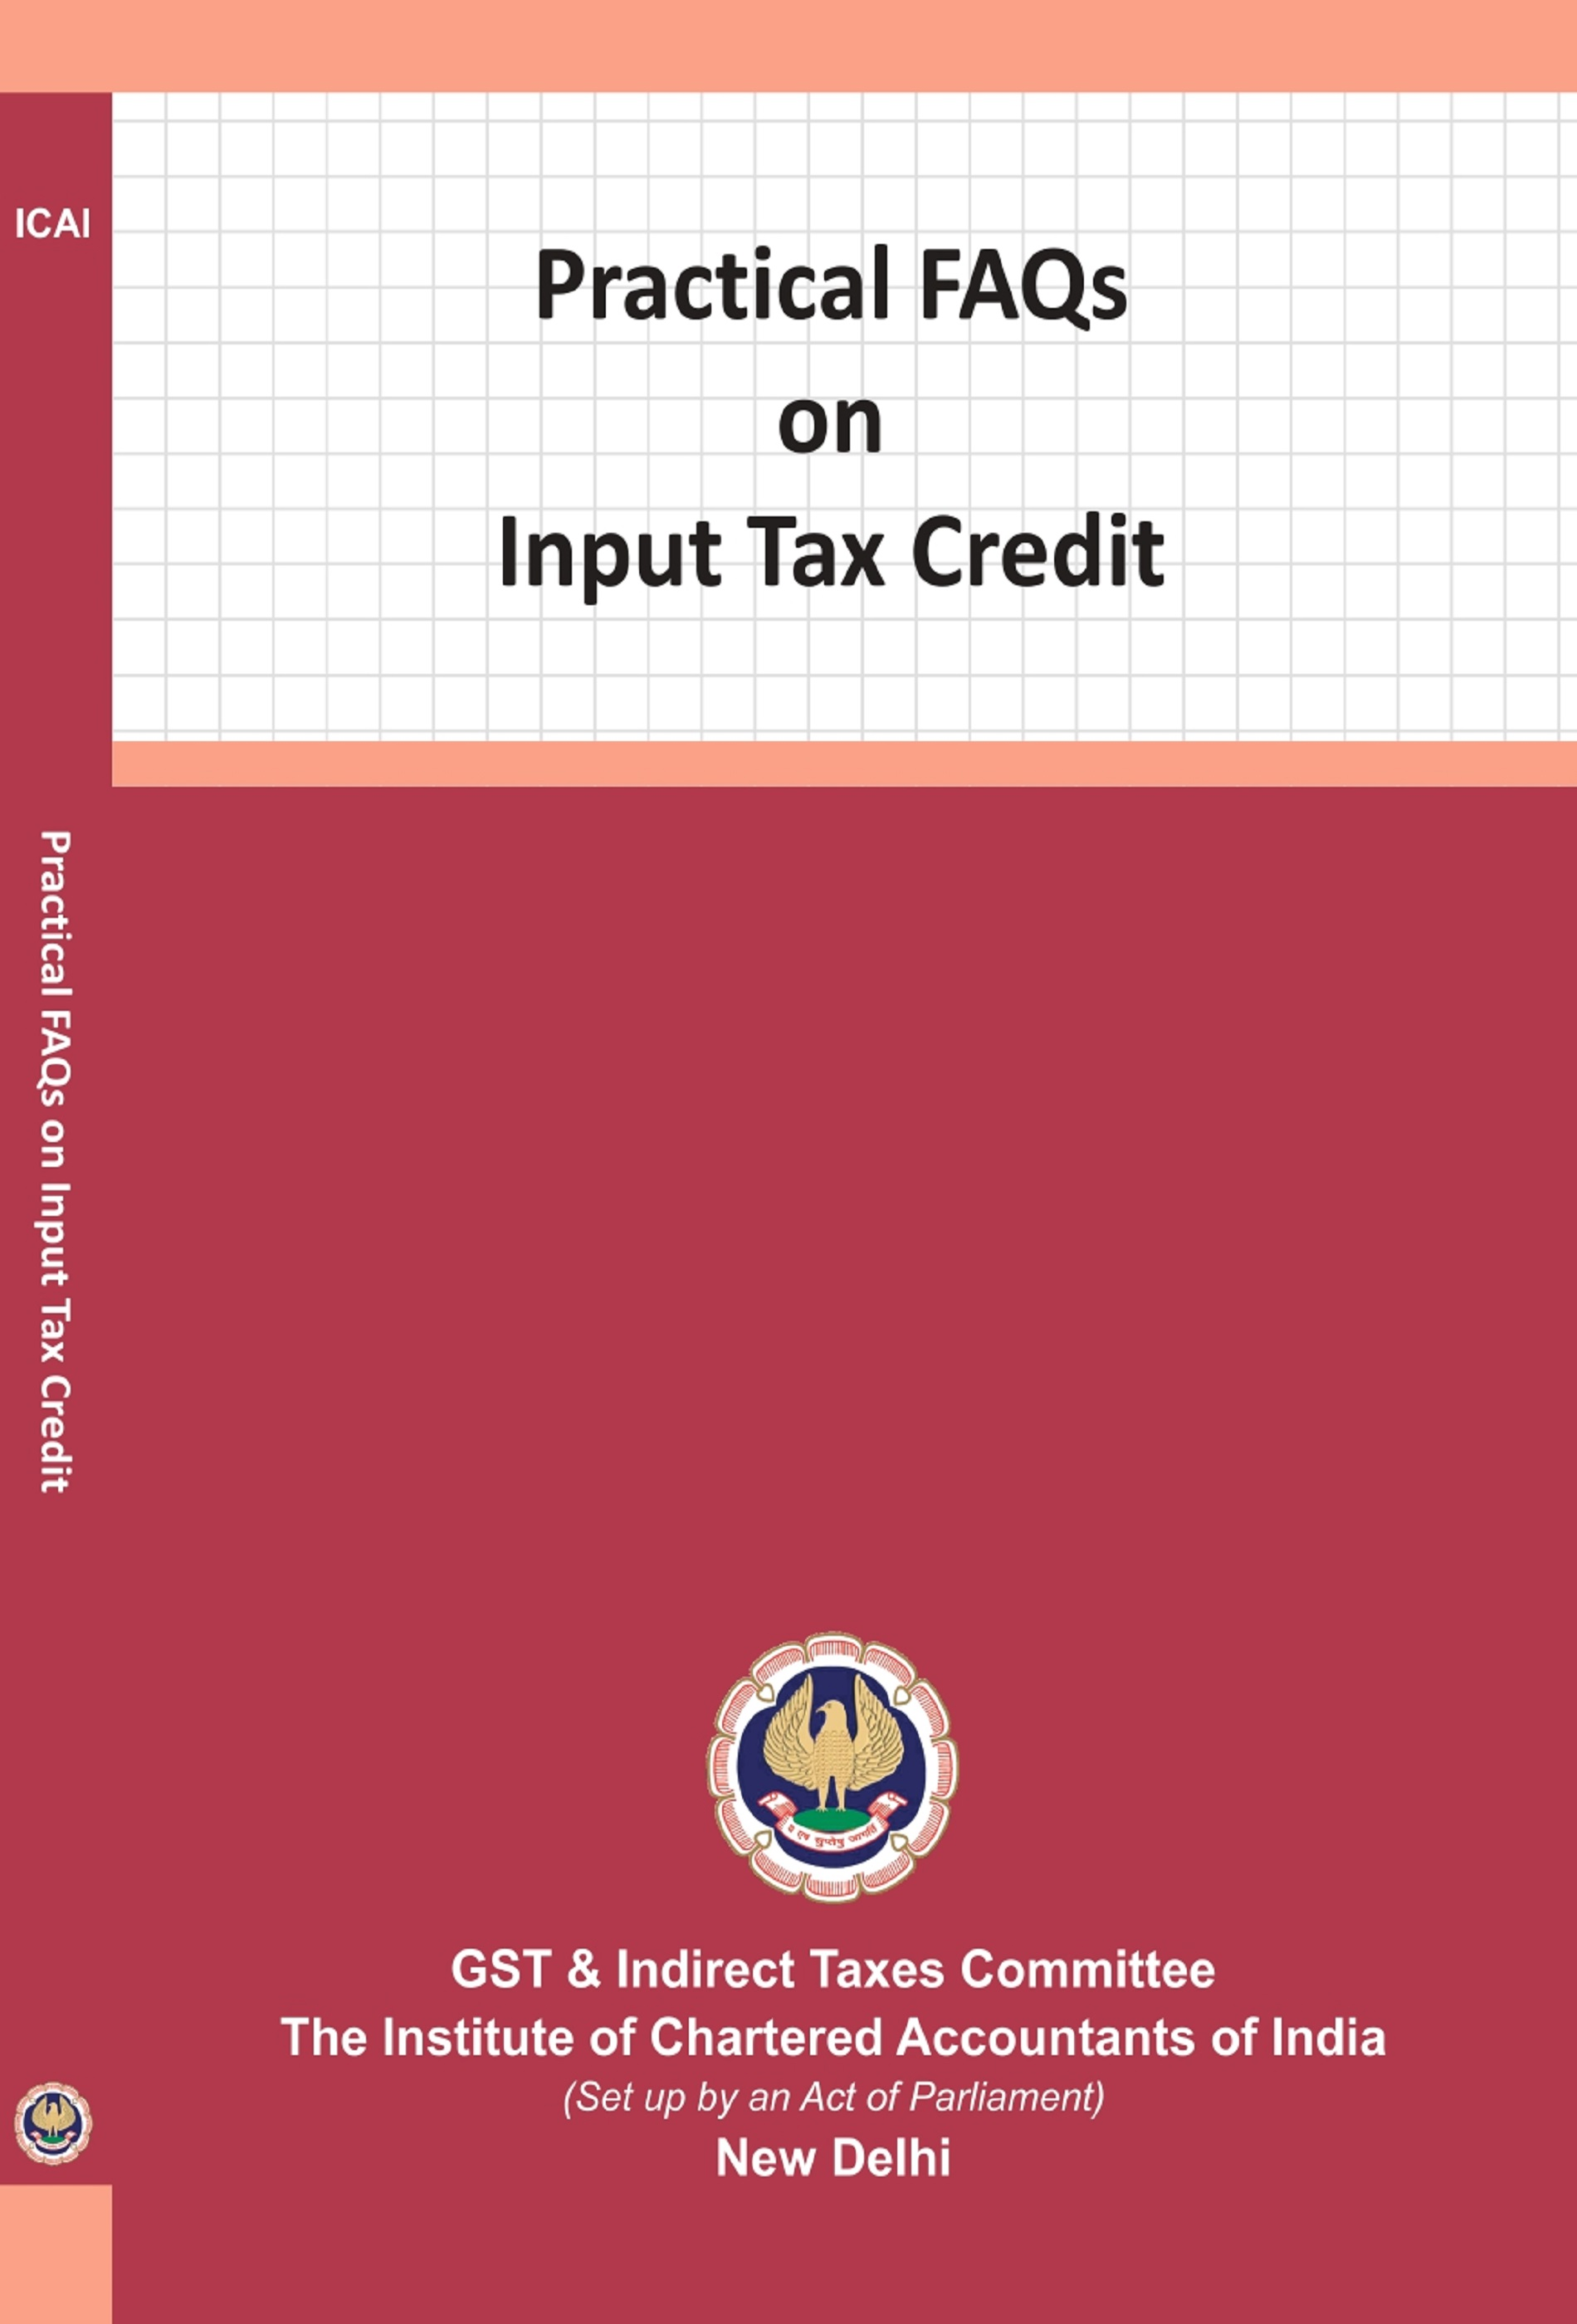 Practical FAQs on Input Tax Credit (July, 2021)